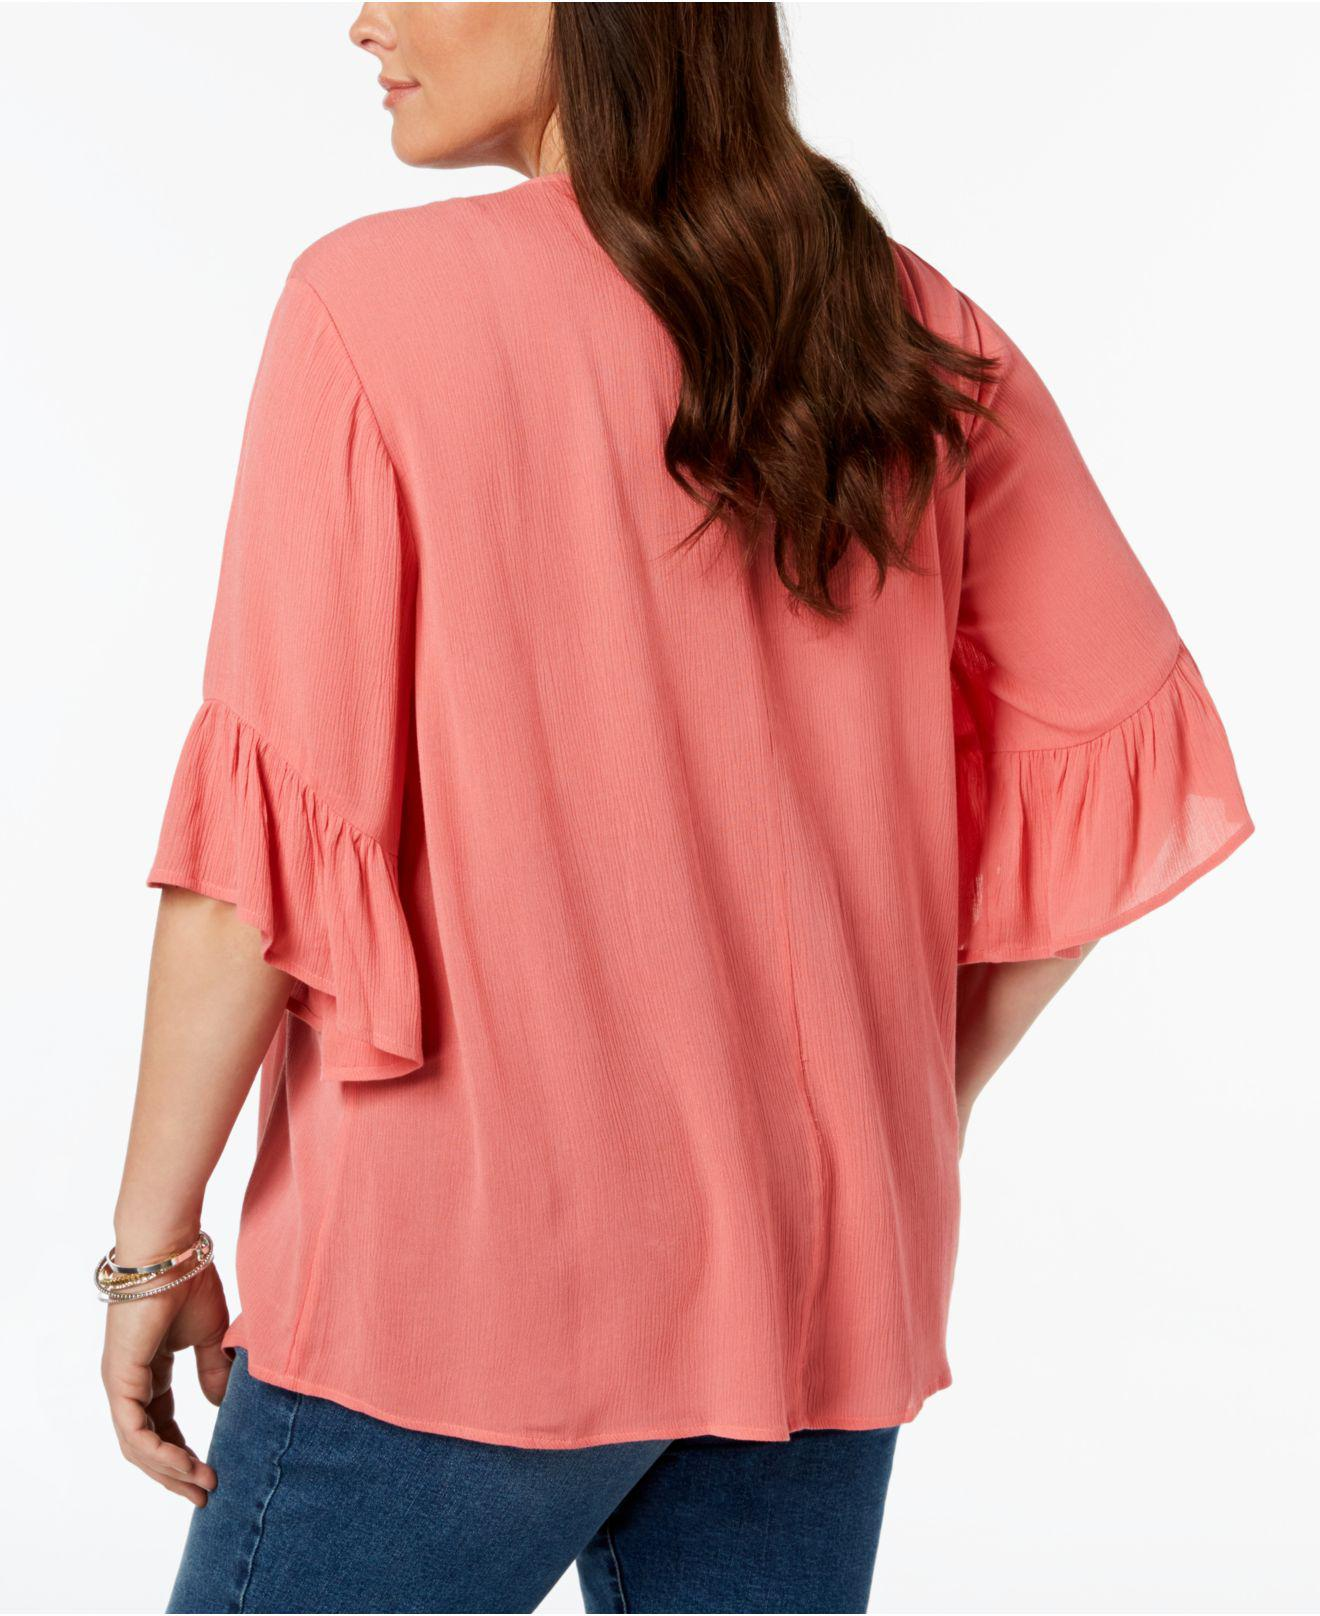 Style /& Co Women/'s Plus Size Pintucked Ruffled Peasant Top